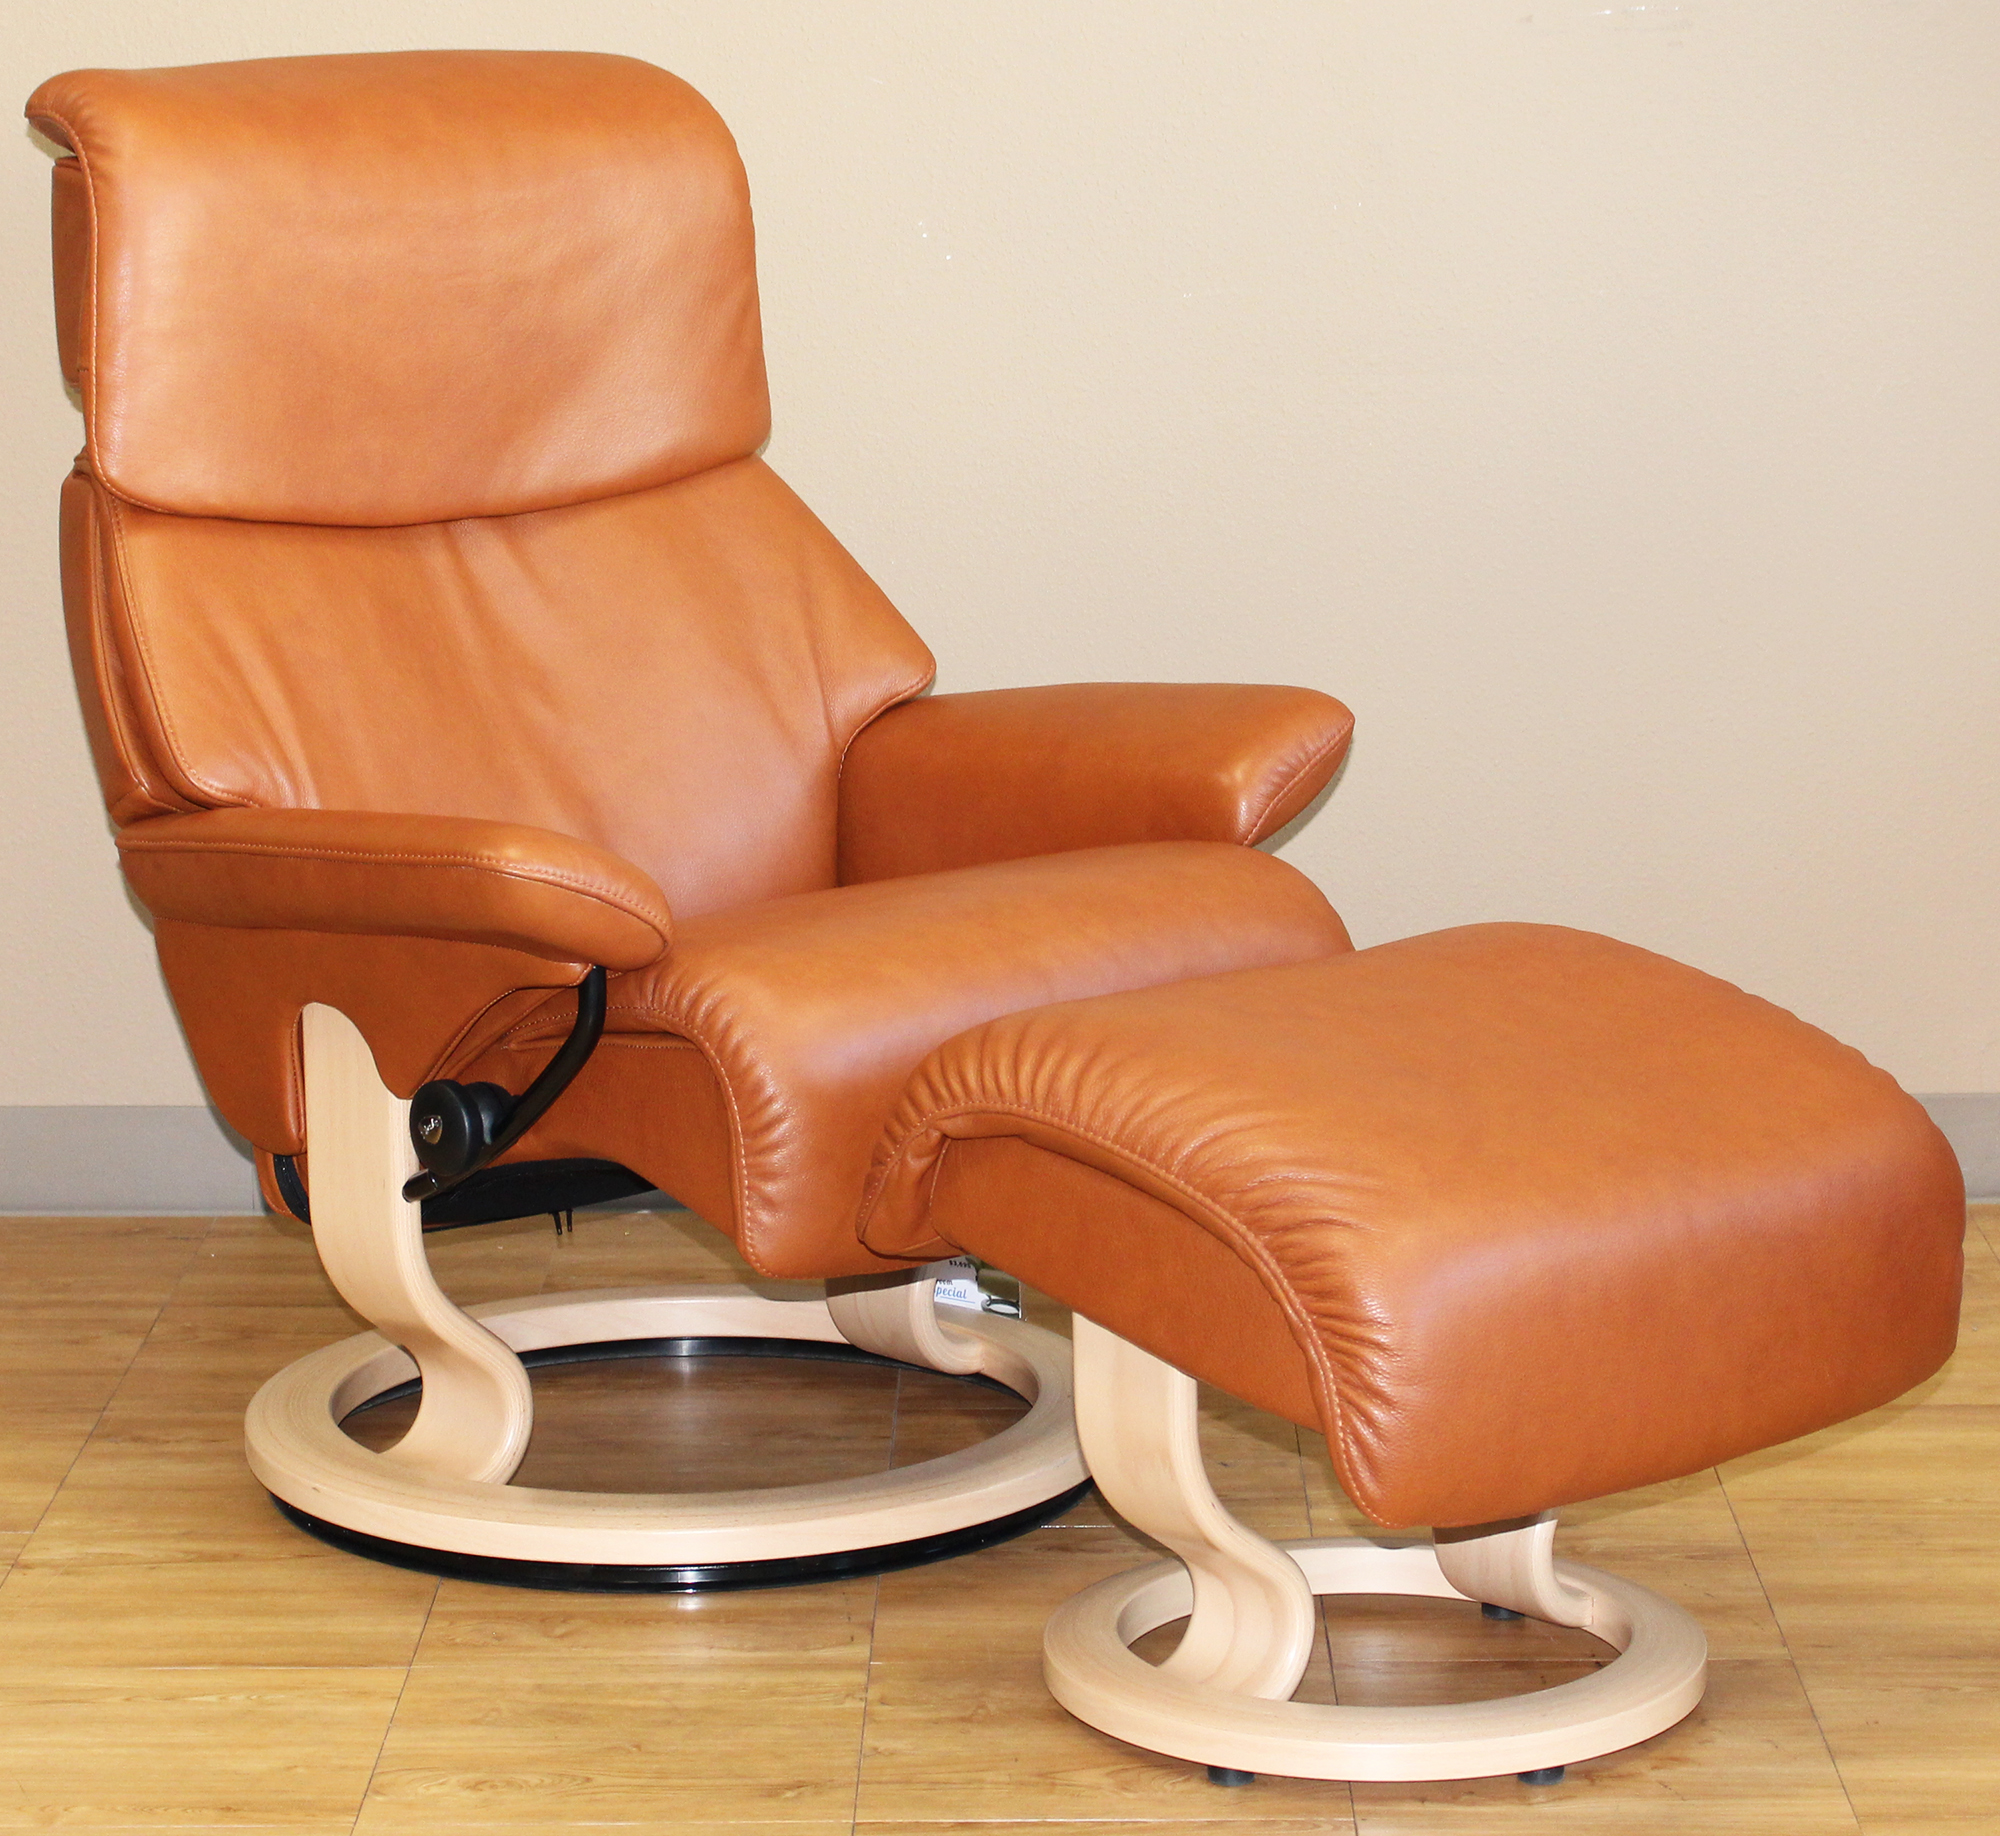 Stressless dream royalin tigereye leather recliner chair for Chair chair chair